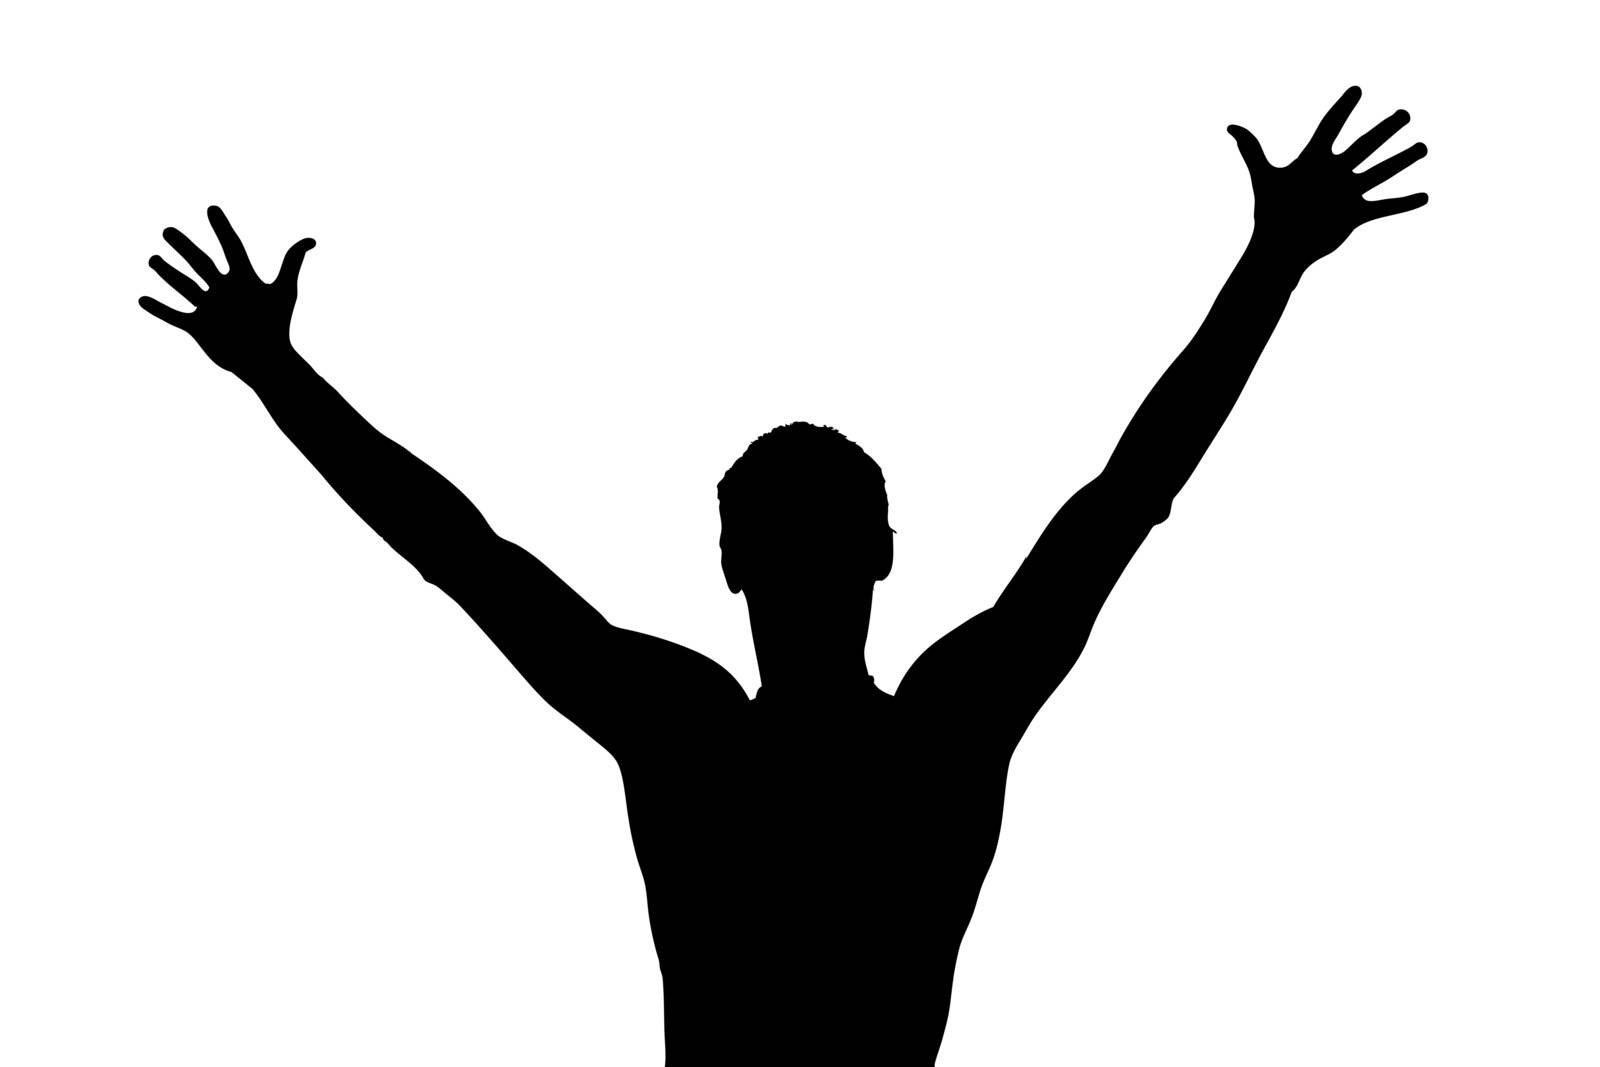 picture a guy who raised his hands up